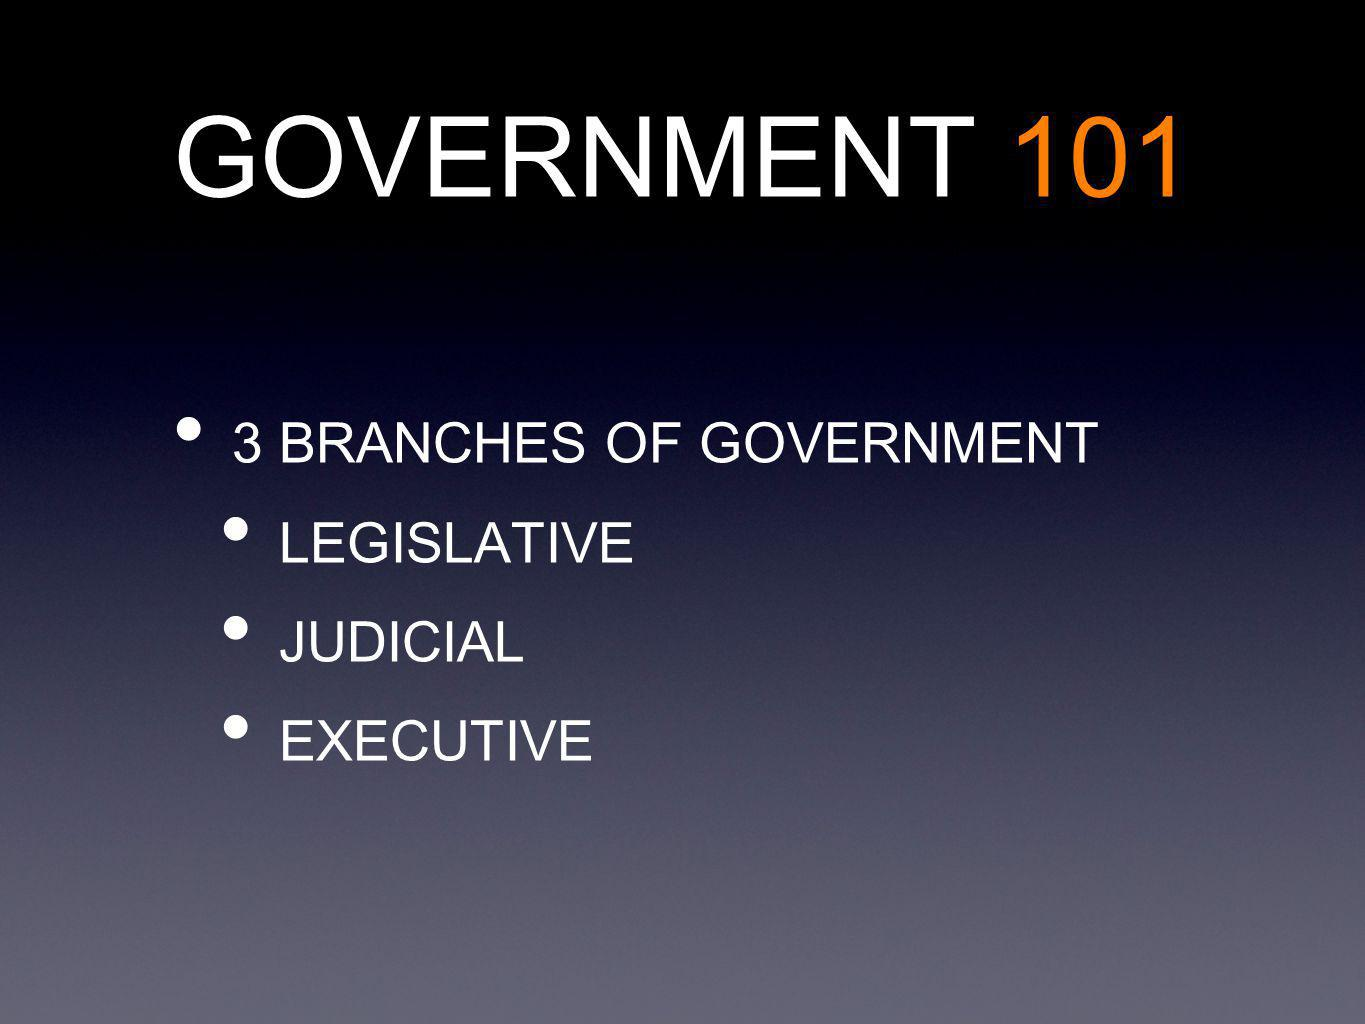 3 BRANCHES OF GOVERNMENT LEGISLATIVE JUDICIAL EXECUTIVE GOVERNMENT 101